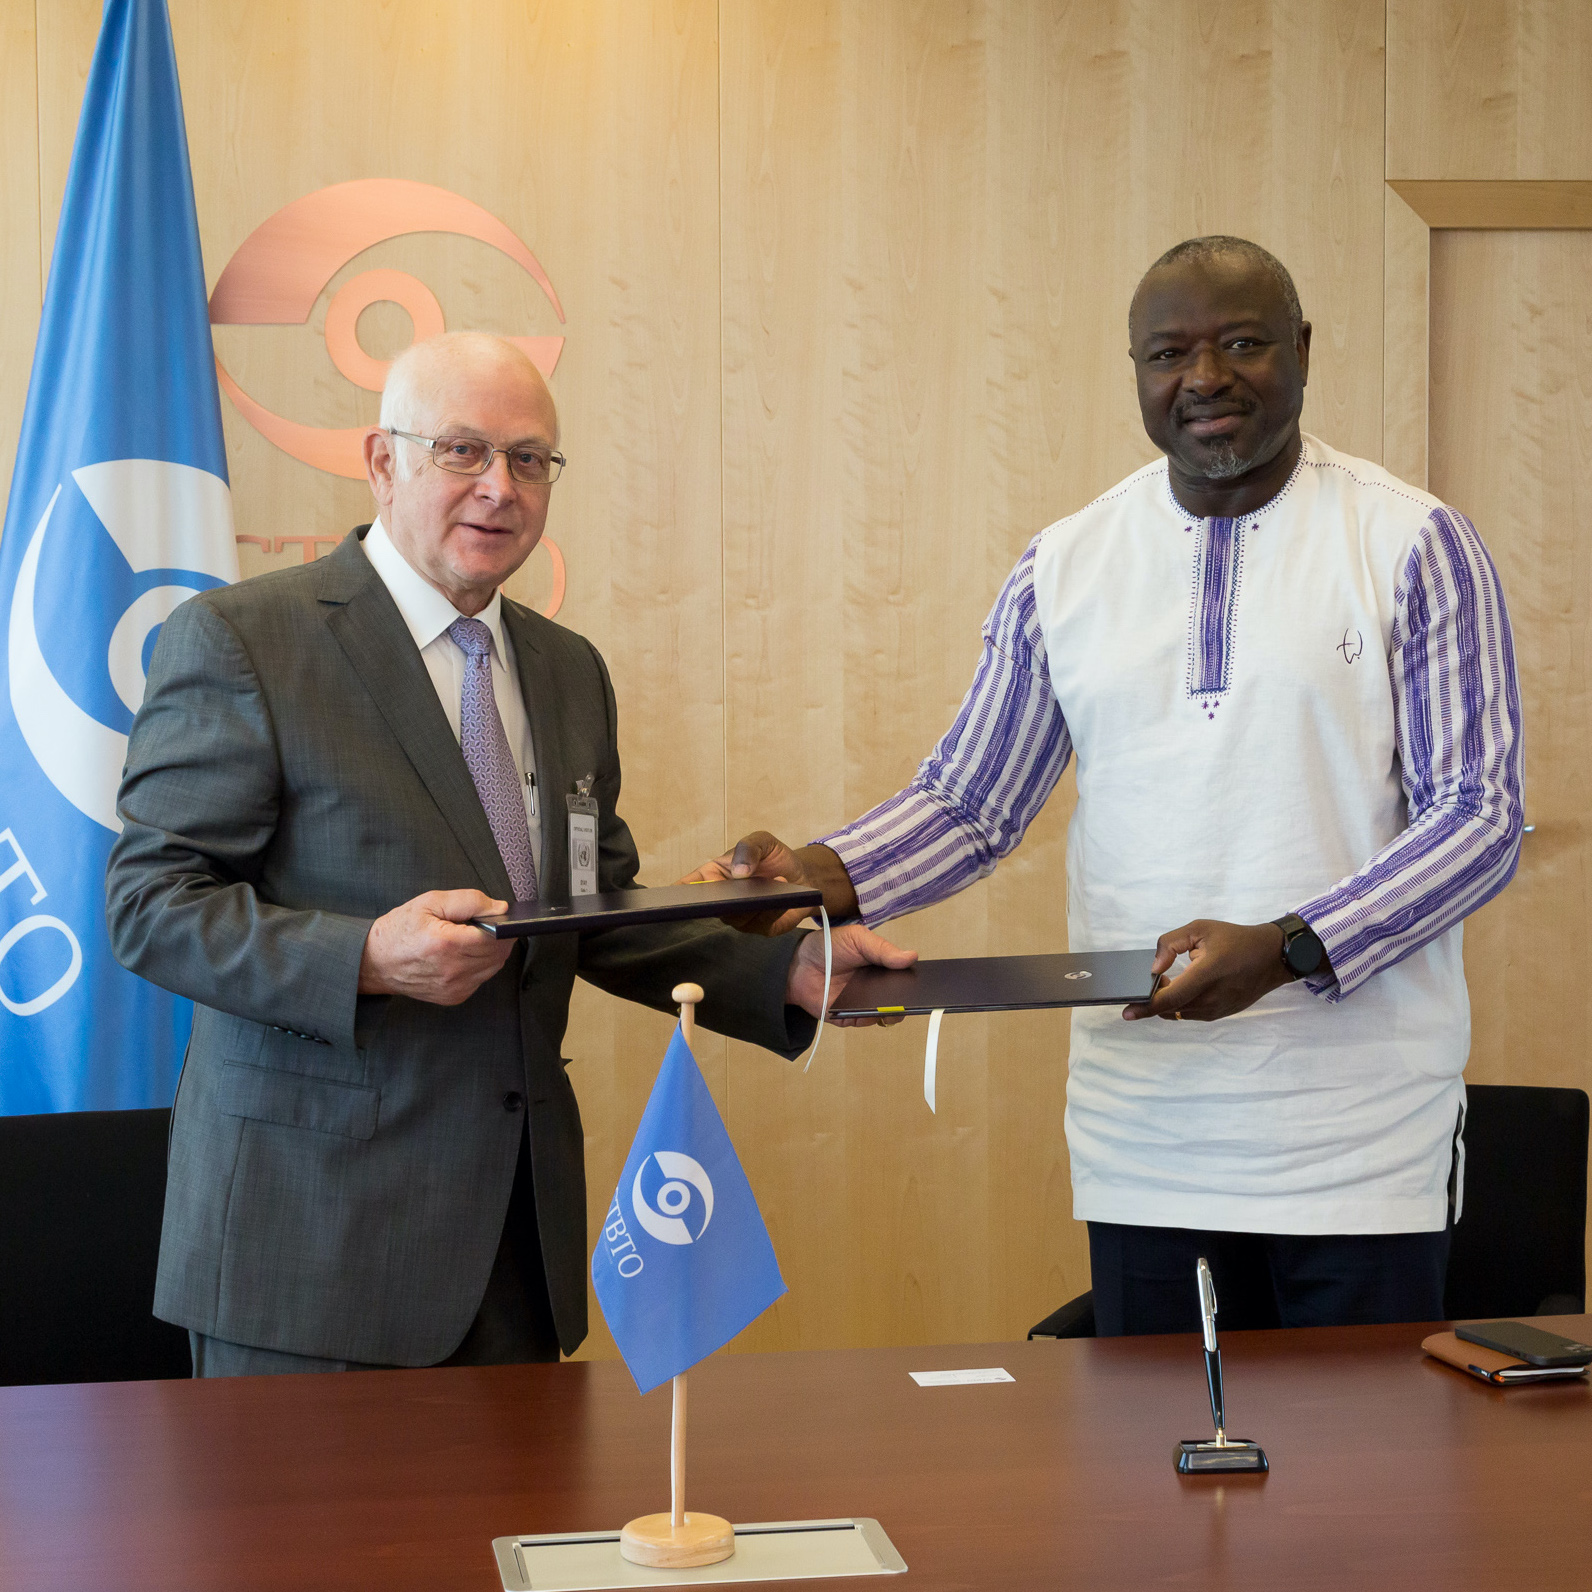 CTBTO and STAR-NET signed partnership agreement